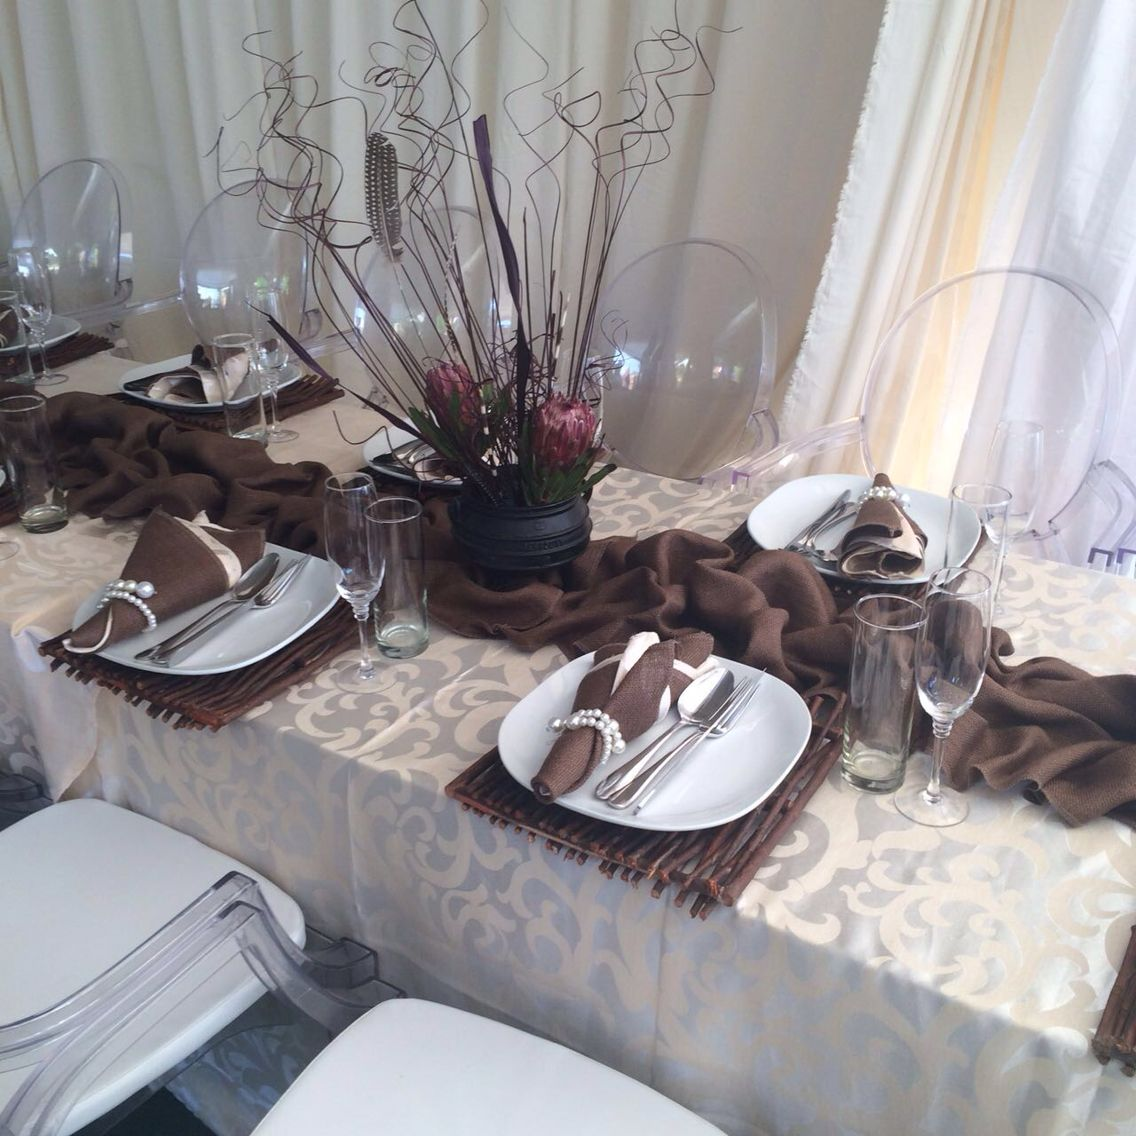 Tswana traditional wedding decor 2018  Alfred Mpapate mpapate on Pinterest